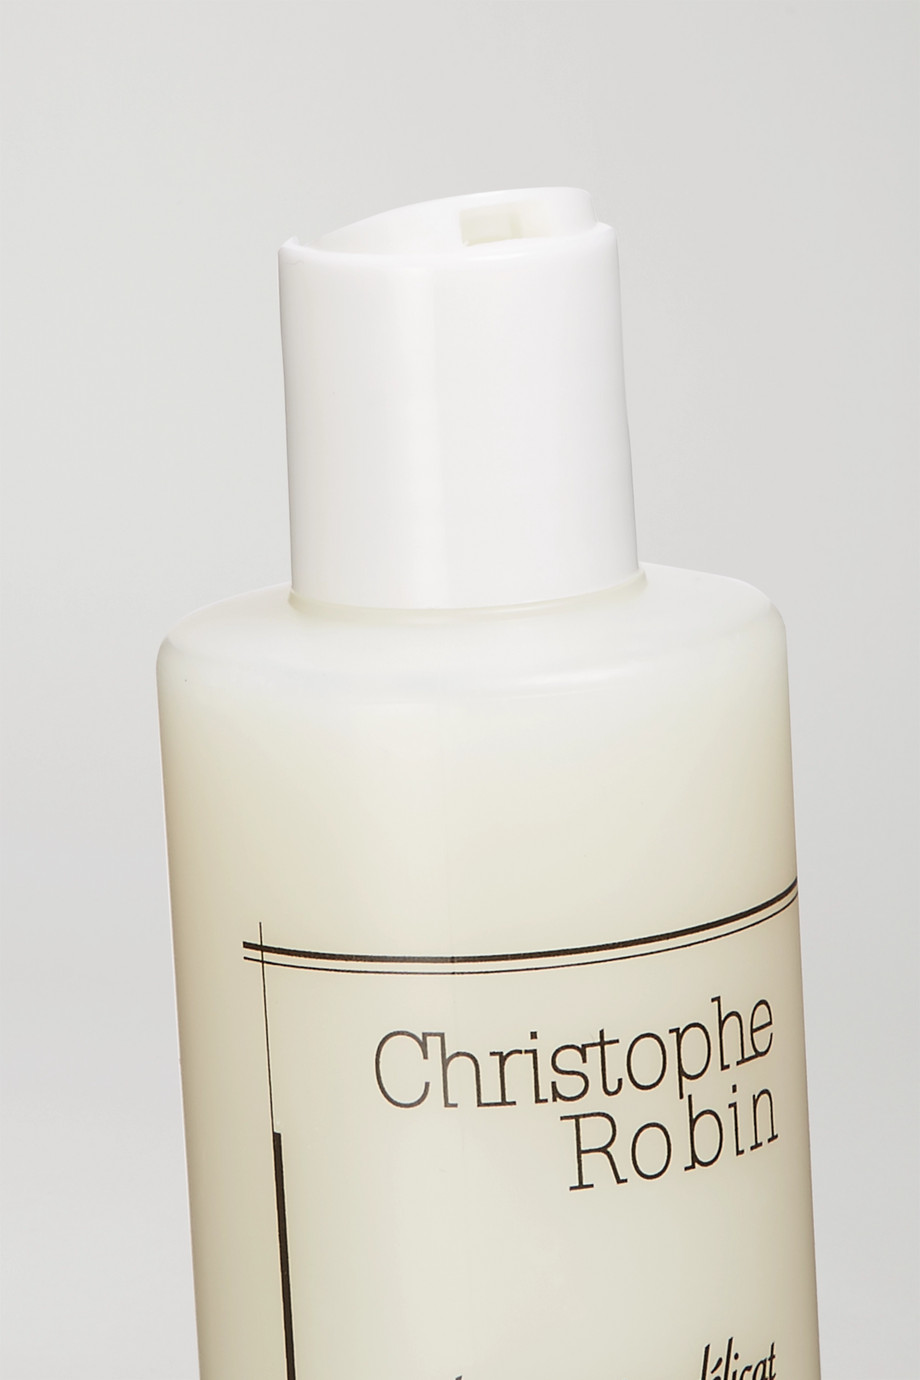 CHRISTOPHE ROBIN Delicate Volumizing Shampoo, 250ml